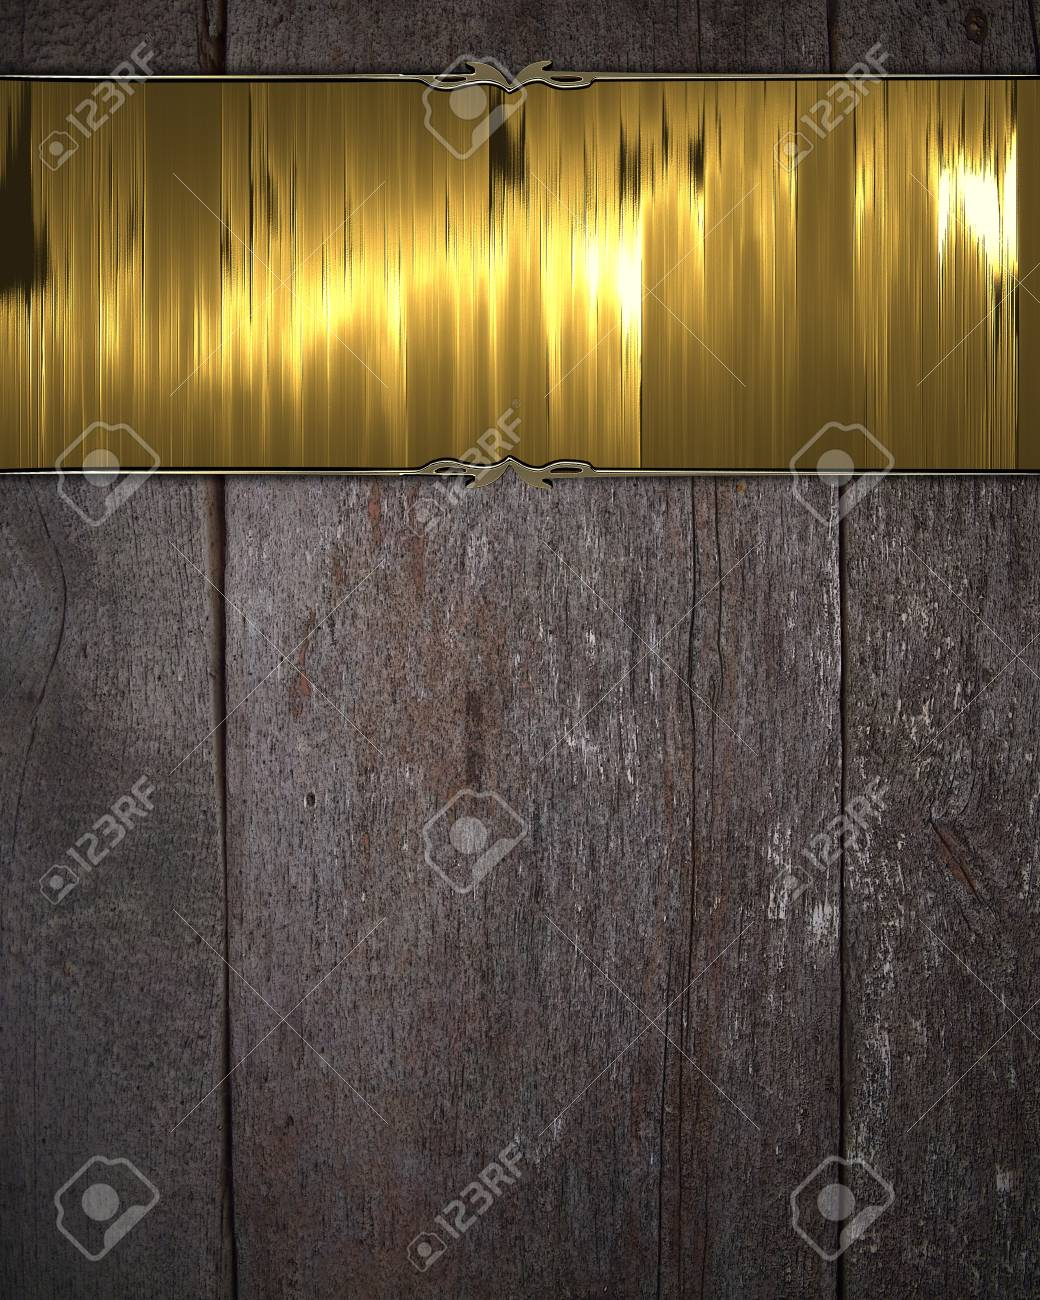 gold metal plate on wooden background Stock Photo - 18973369